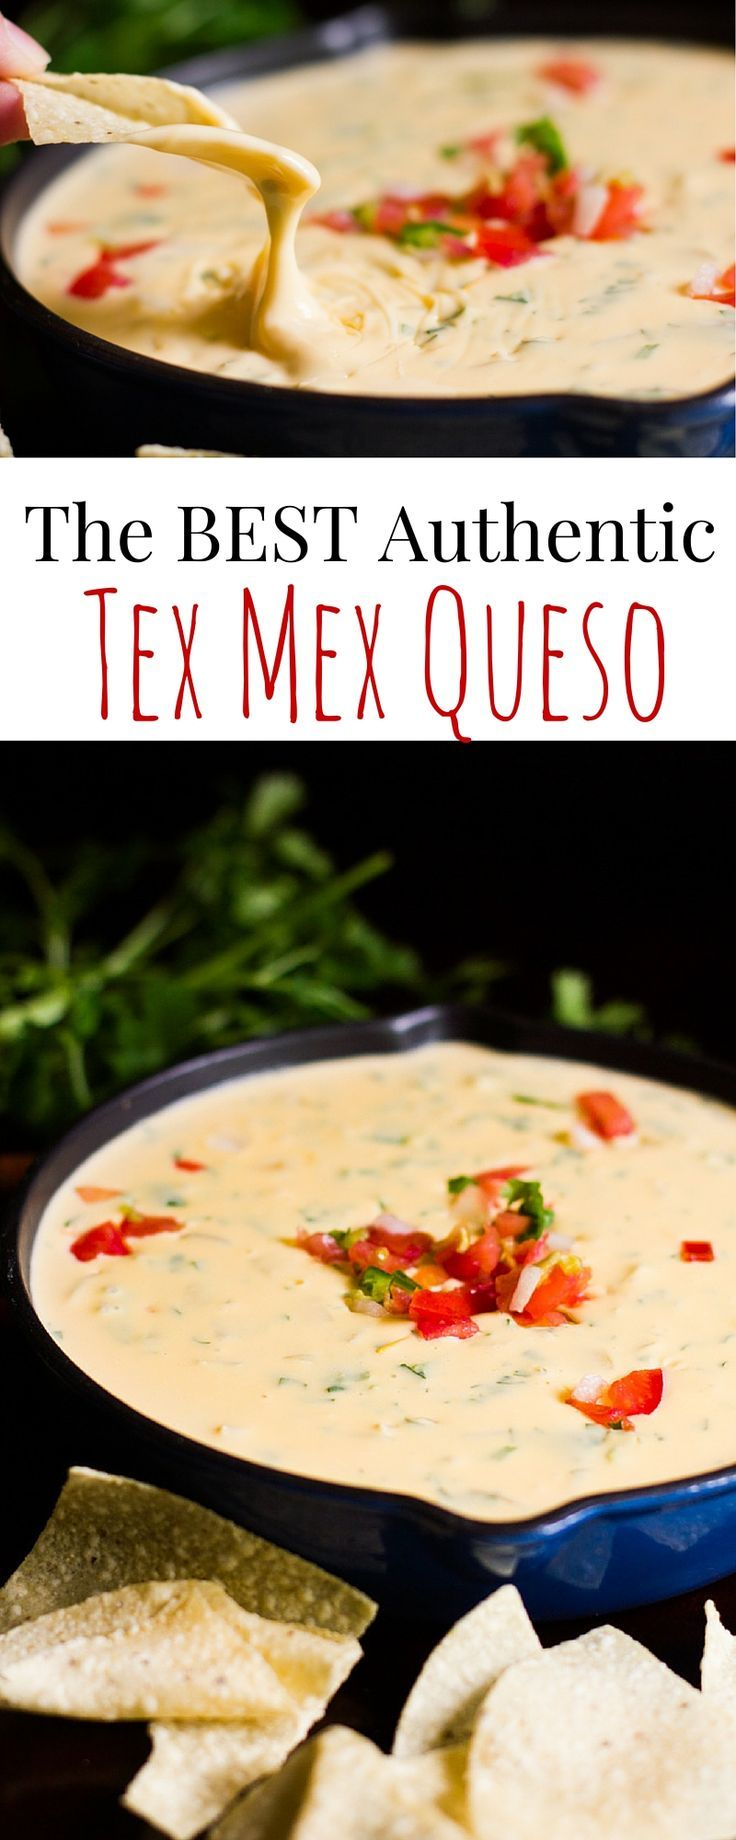 Authentic chile con queso, Mexican cheese dip. Only use real ingredients. No Velveeta!